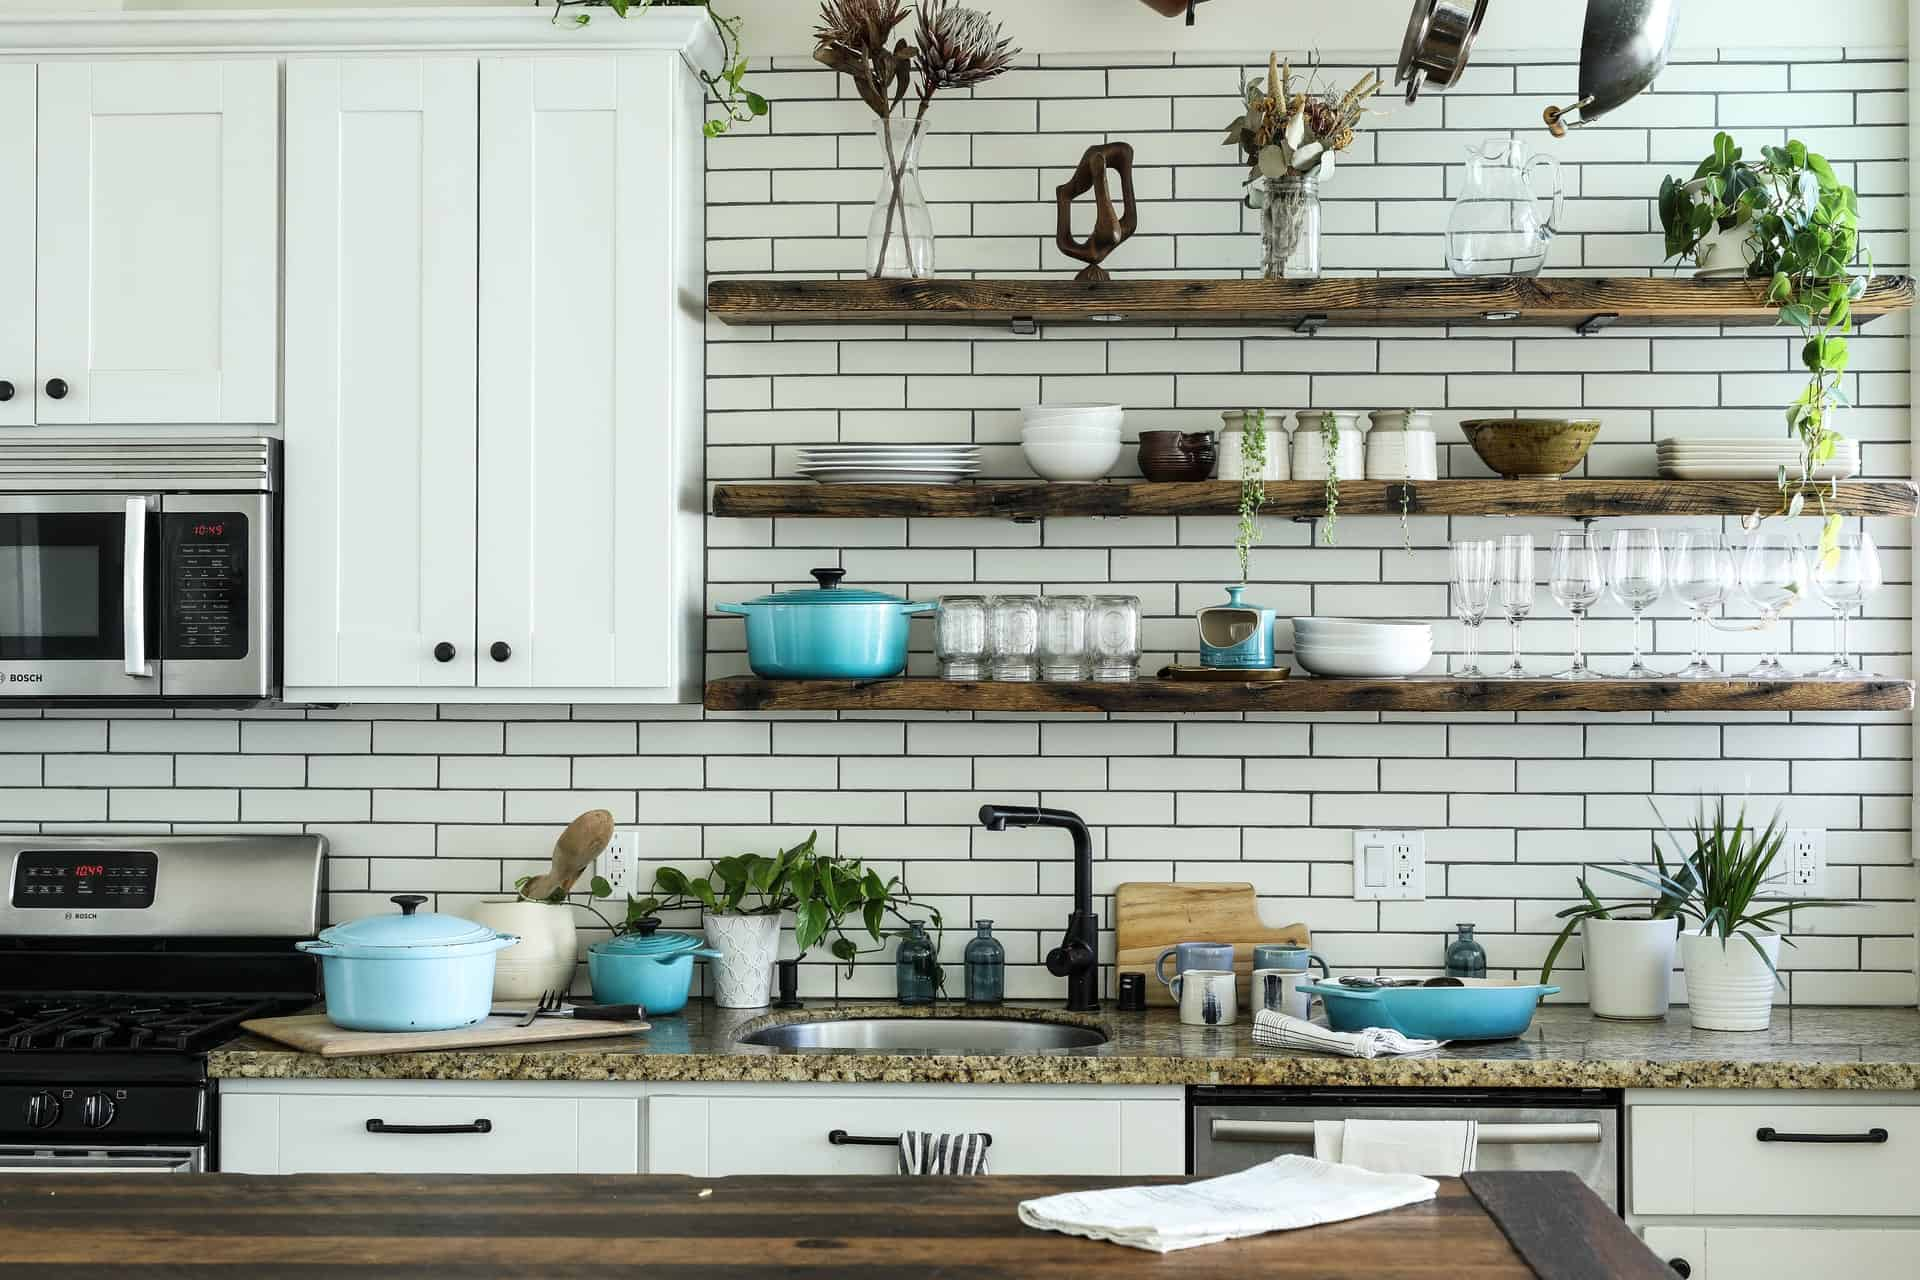 Kitchen Gadget Gifts For Mom